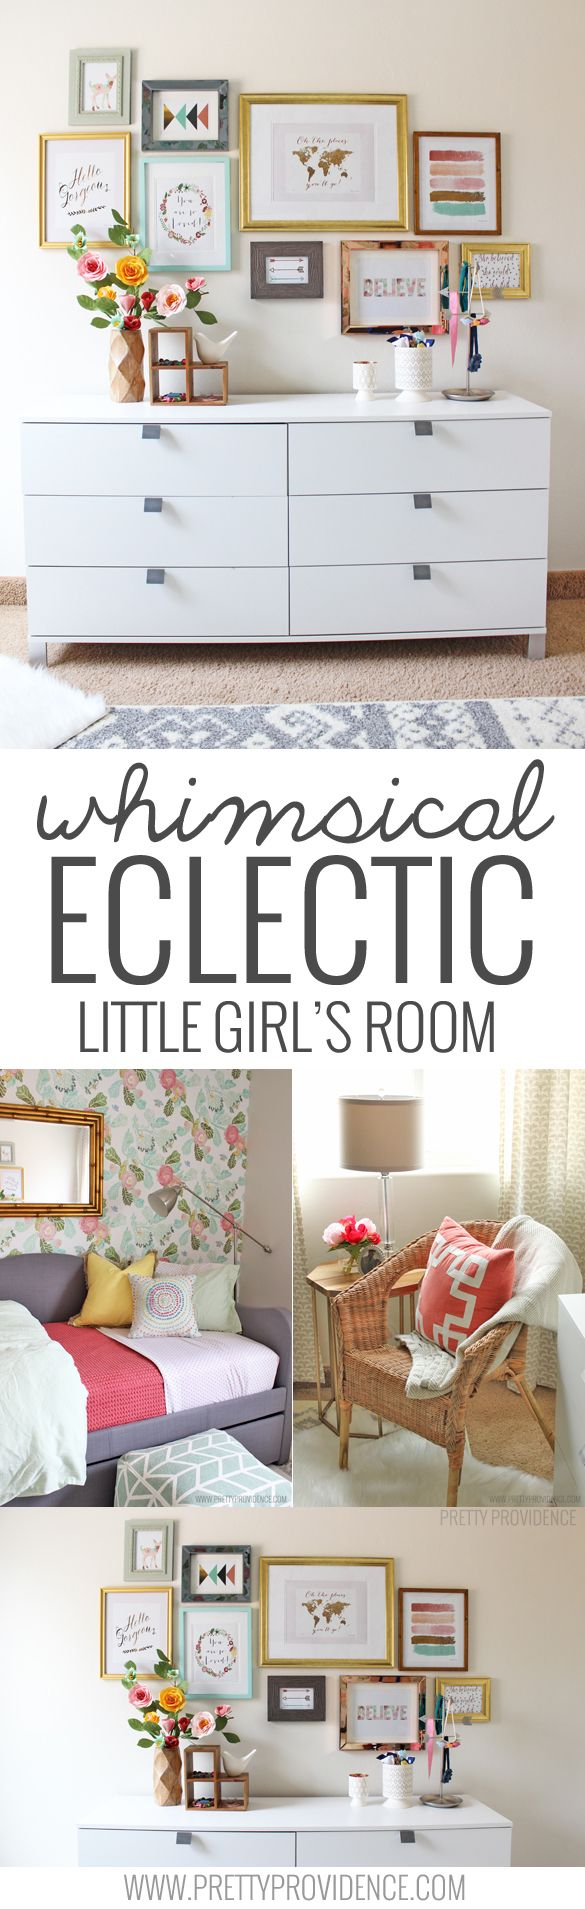 I am obsessed with this whimsical eclectic little girls room! Sweet, bright, and not at all predictable! Plus... I can't believe the deals she found on things!!